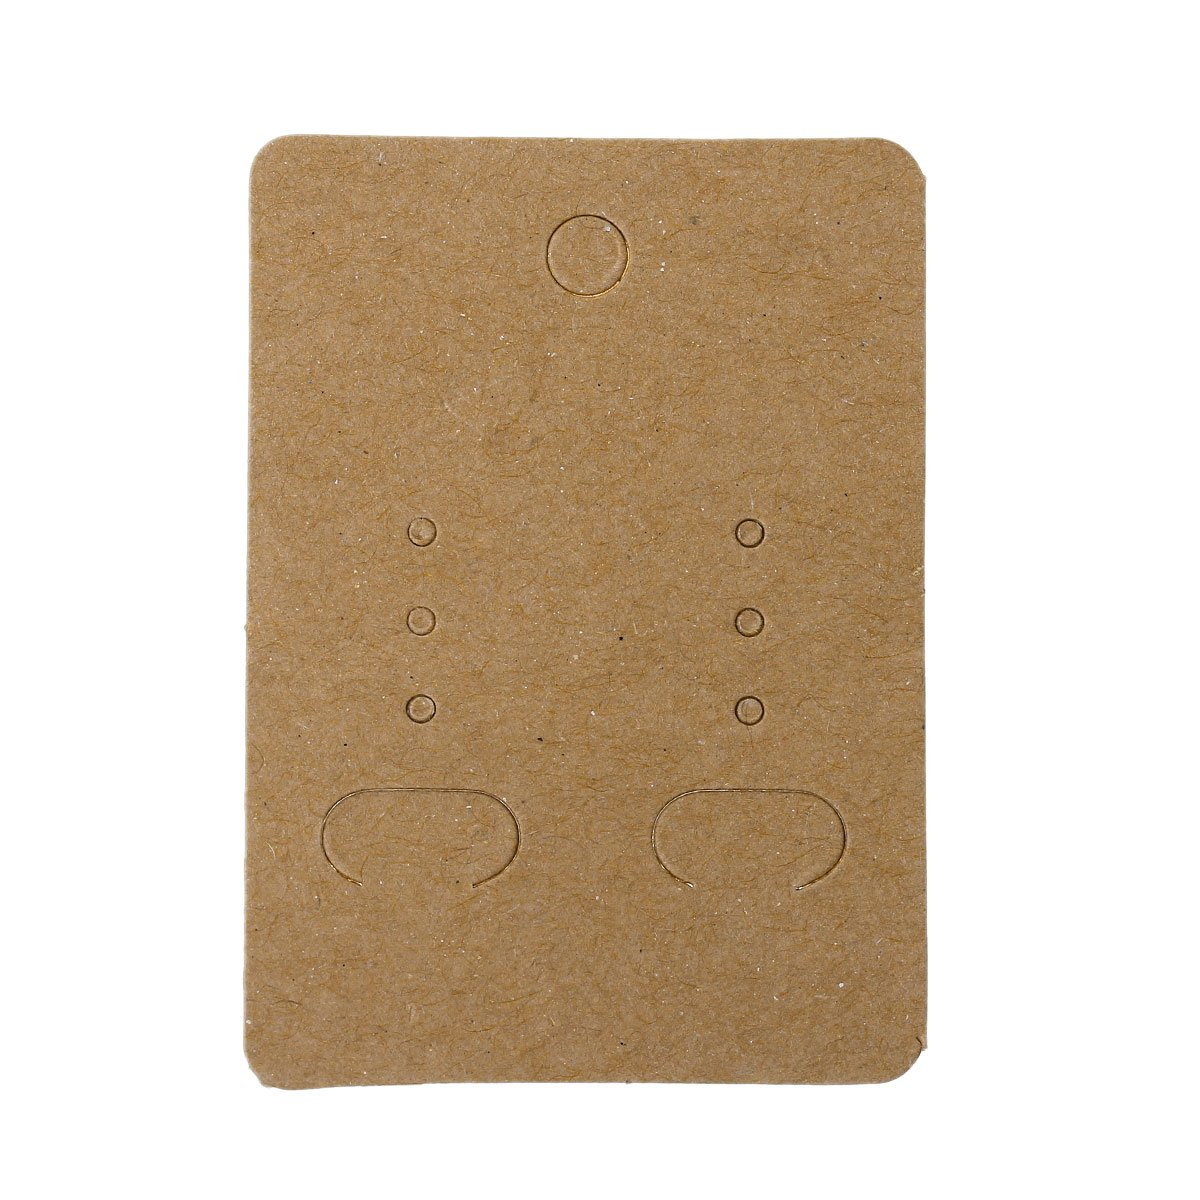 Paper Jewelry Earrings Ear Studs Display Cards Rectangle Light Coffee 7cm(2 6/8) x 5cm(2) (200 Pcs) Generic 4336834699